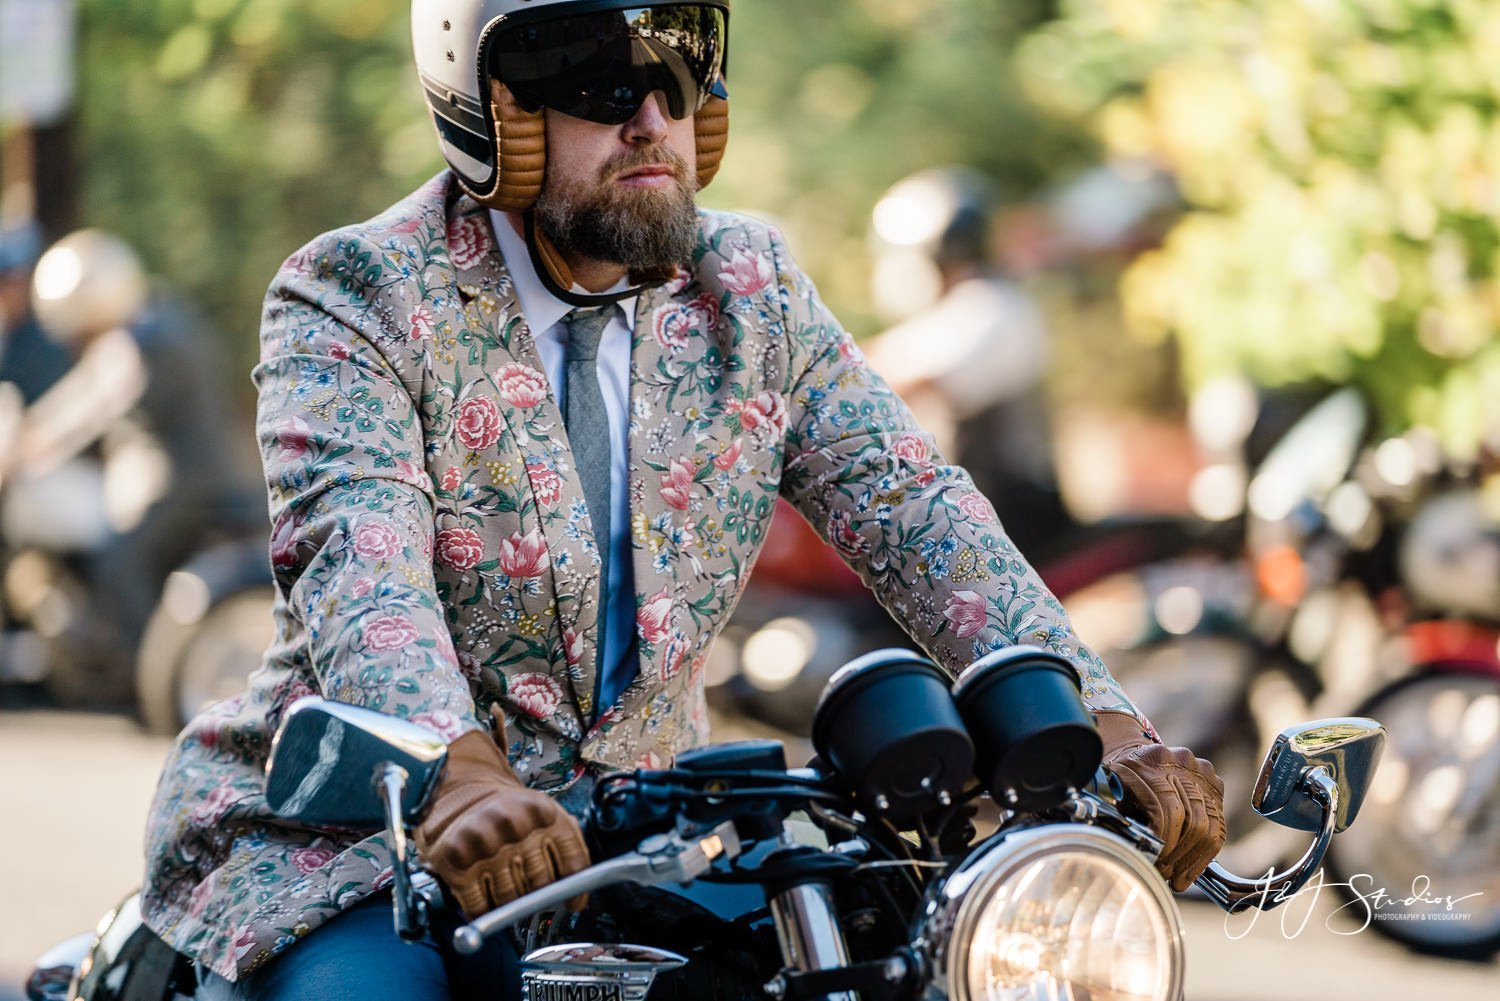 man in floral suit dgr 2019 philly